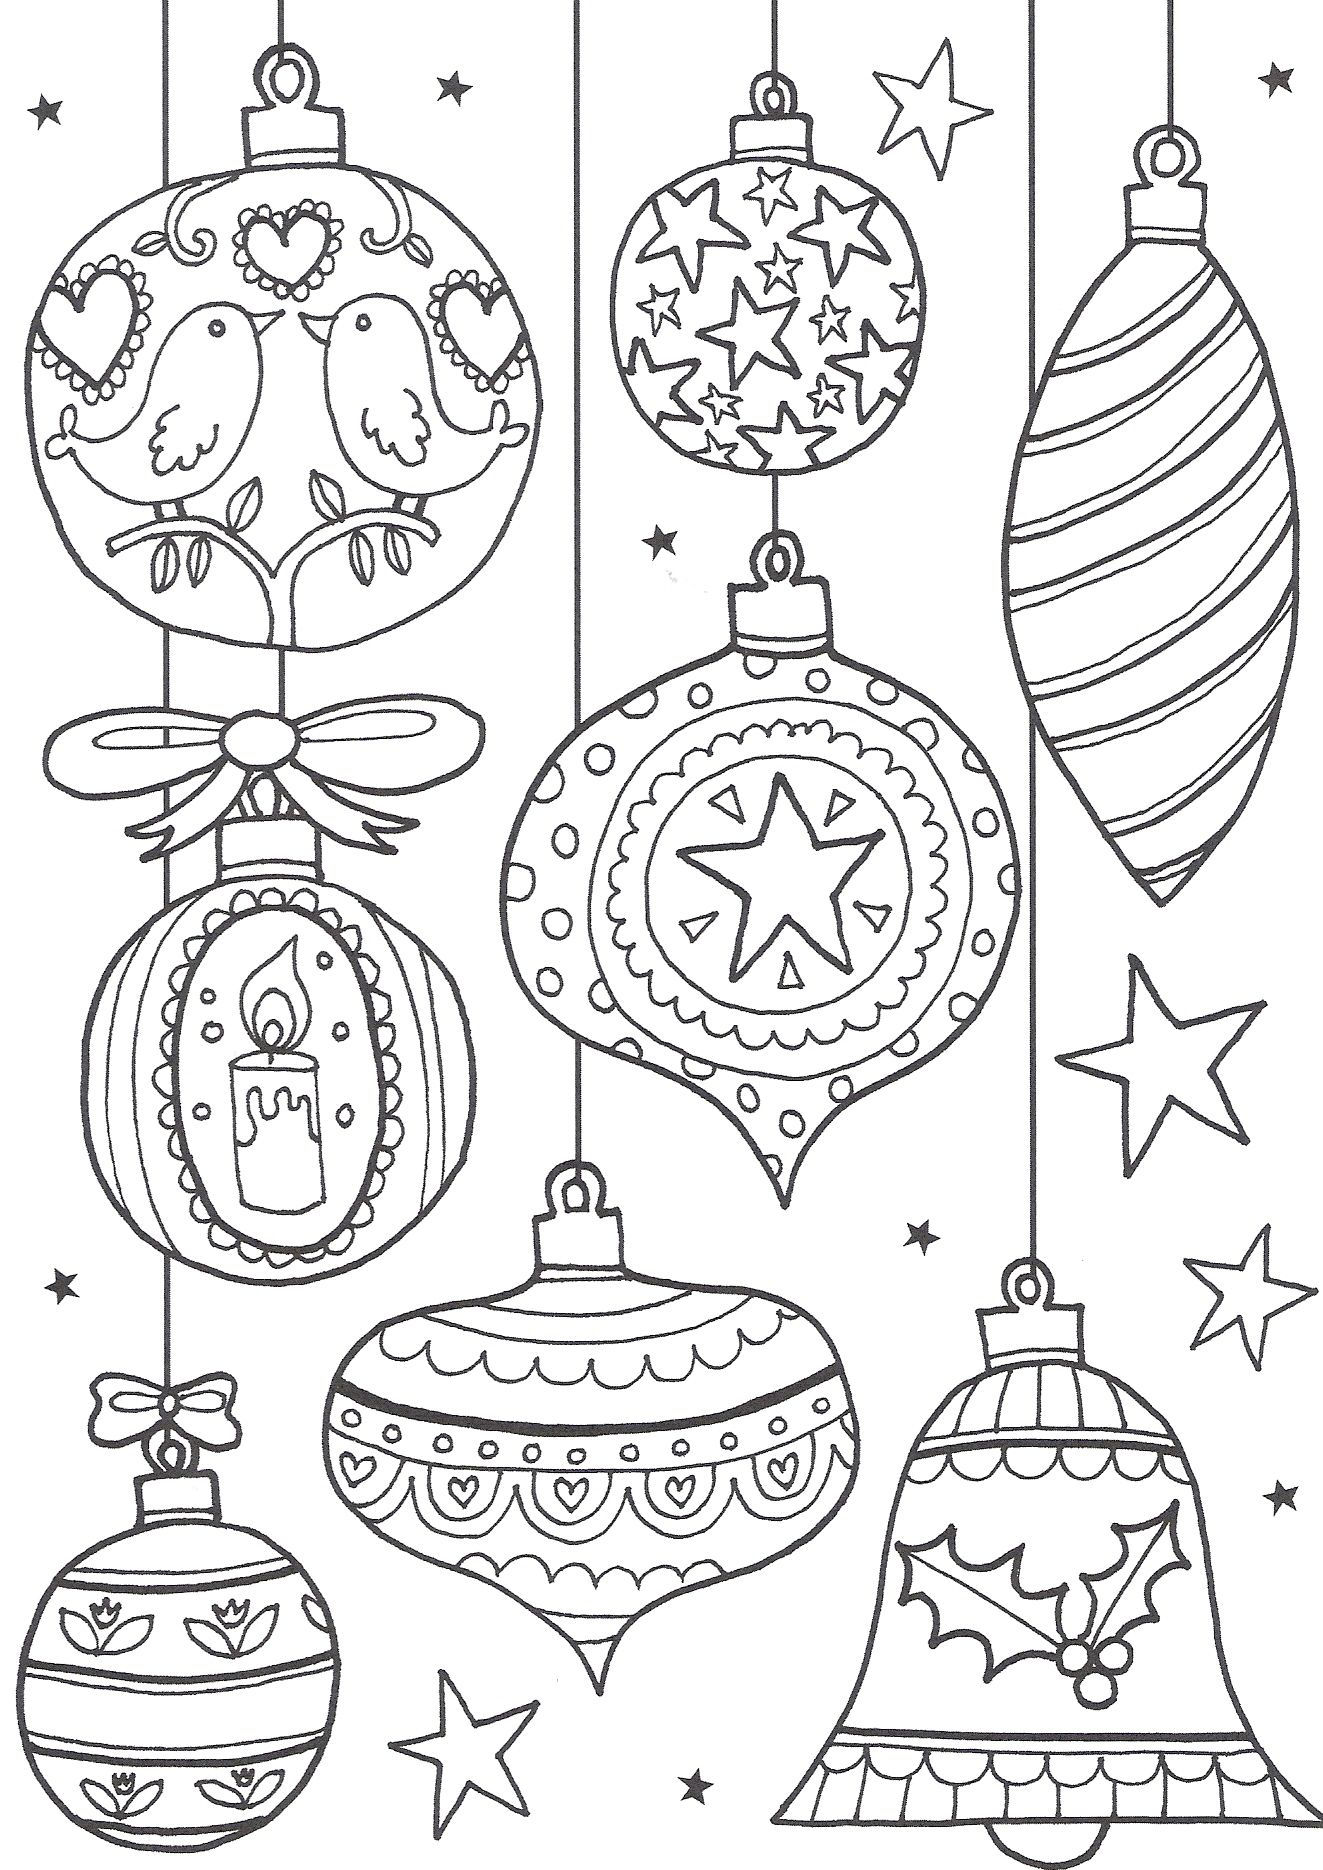 Free Christmas Colouring Pages For Adults – The Ultimate Roundup - Free Printable Christmas Coloring Pages For Kids